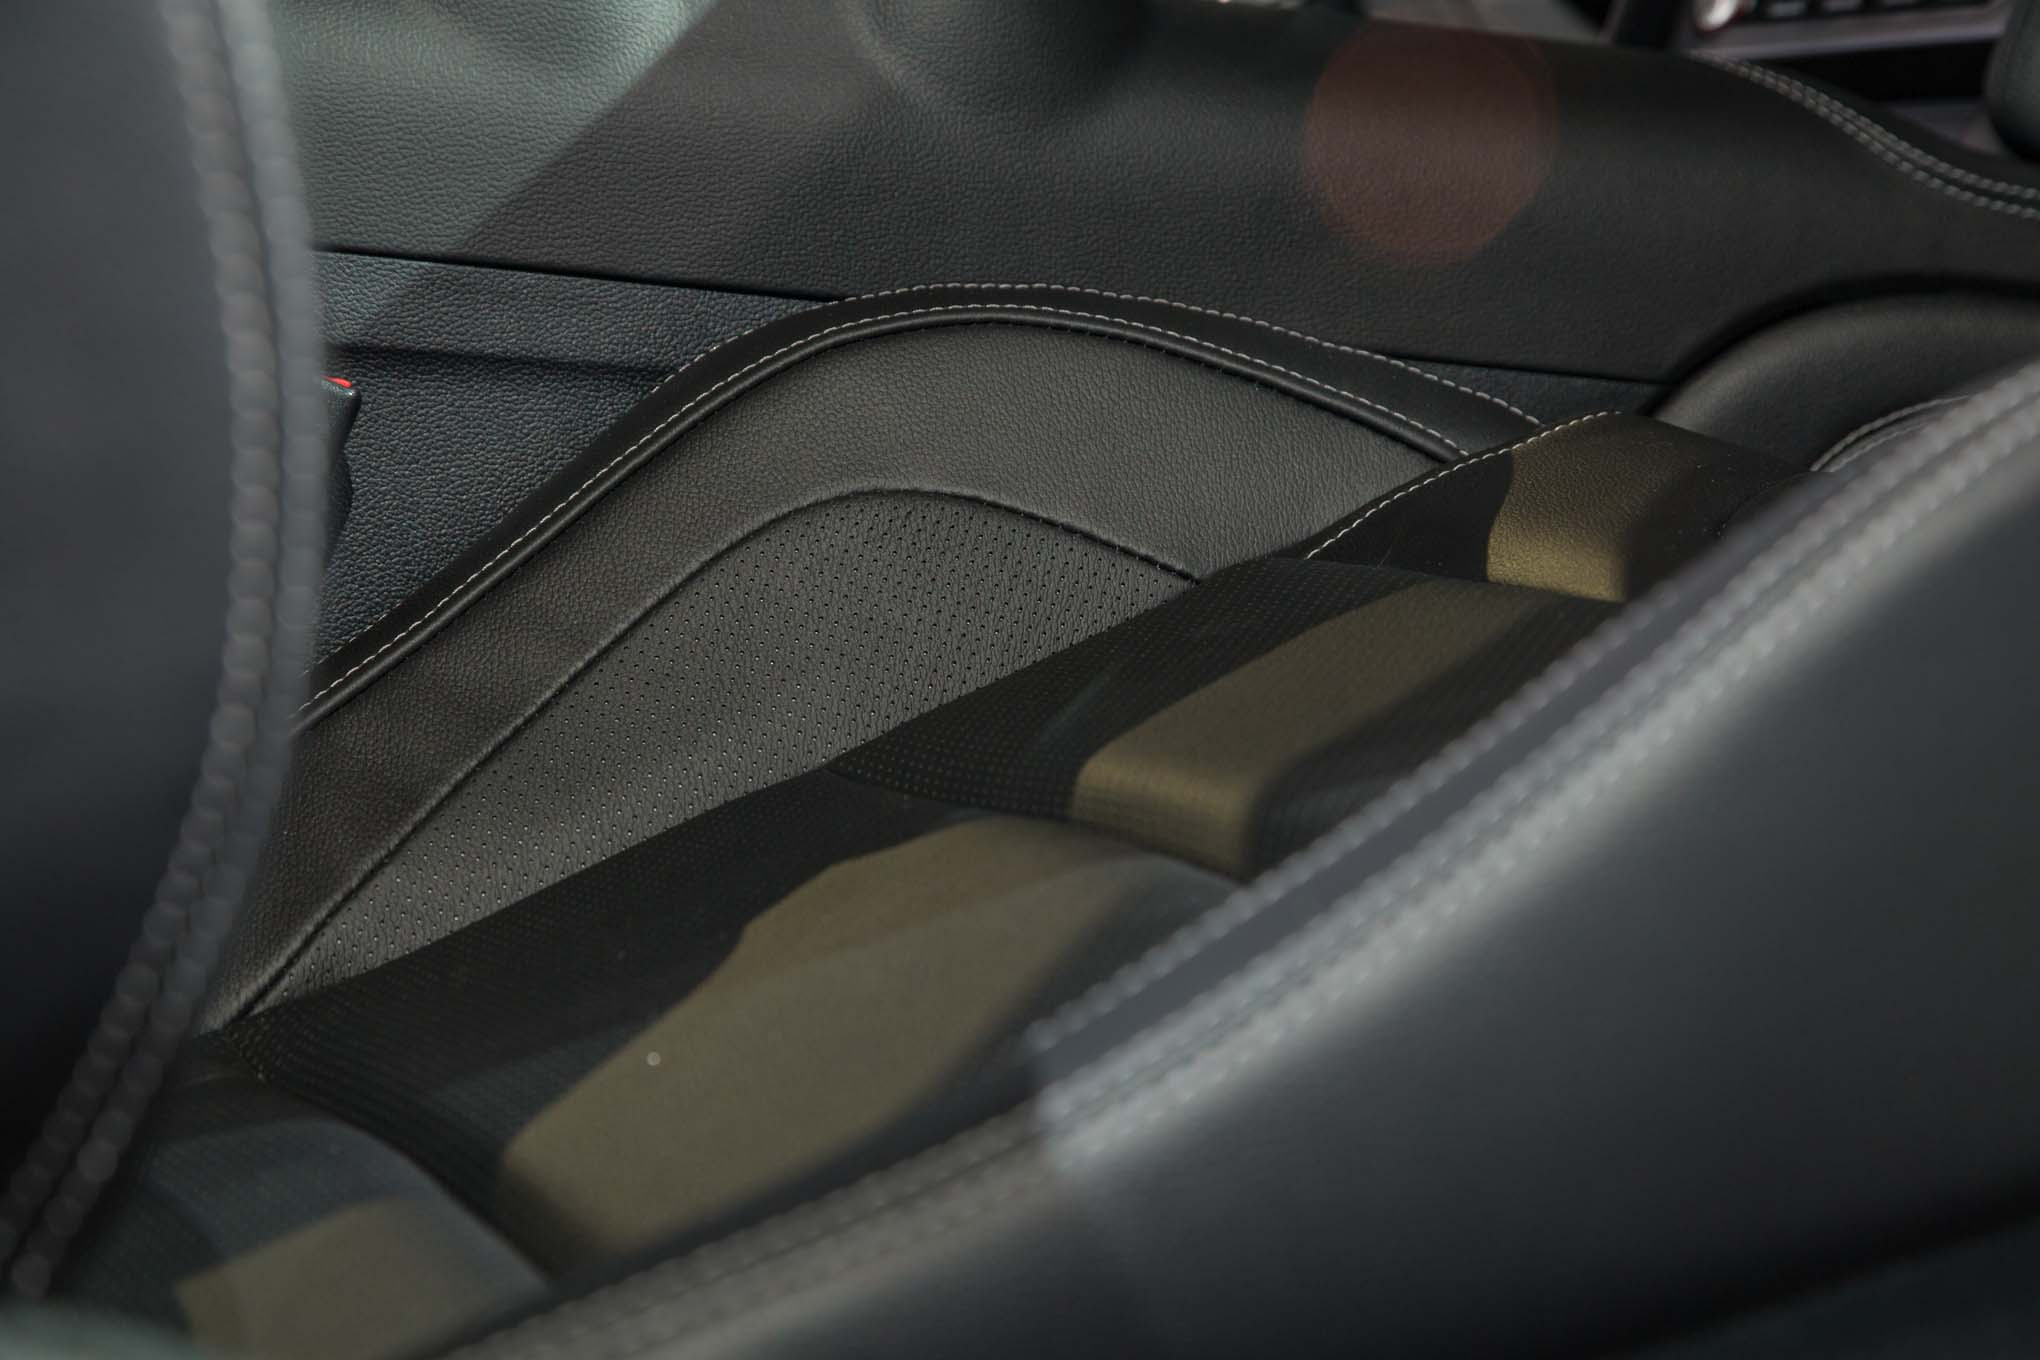 2018 ford mustang gt interior leather seats